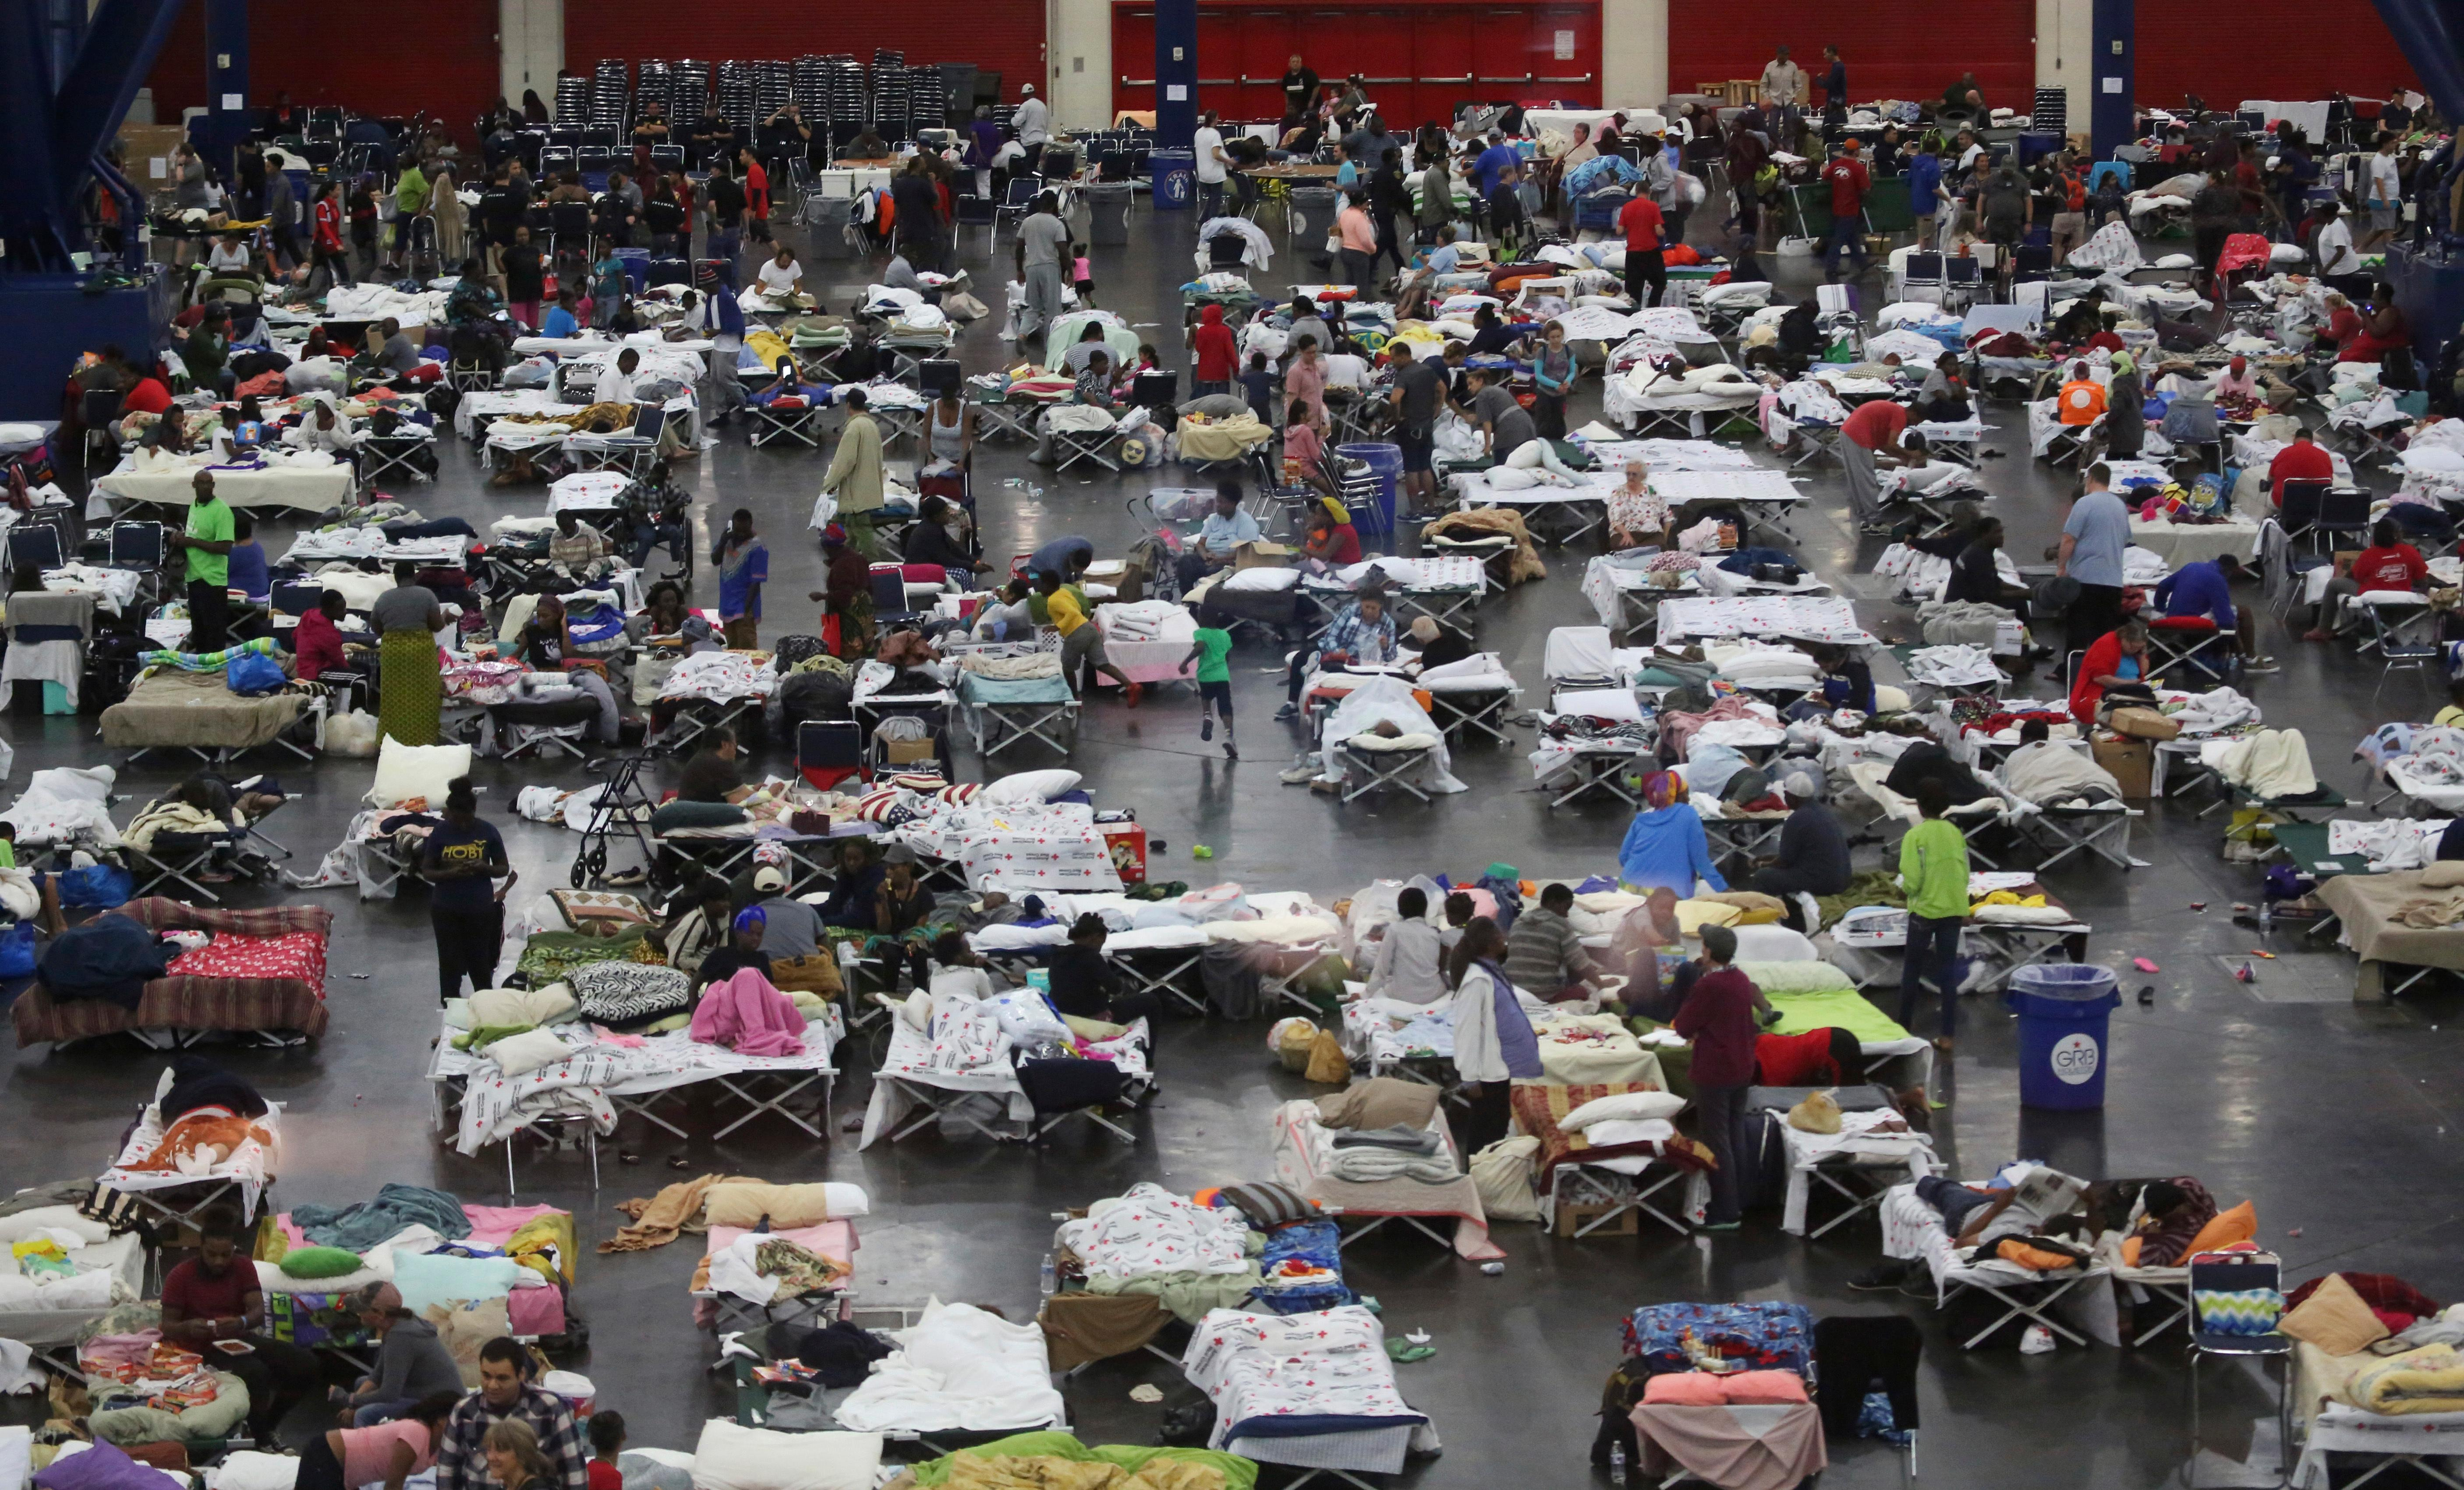 FILE - In this Tuesday, Aug. 29, 2017, file photo, evacuees escaping the floodwaters from Tropical Storm Harvey rest at the George R. Brown Convention Center in Houston, Texas. Officials say the last 900 Hurricane Harvey evacuees at the George R. Brown Convention Center have been relocated as the site returns to regular business. (AP Photo/LM Otero, File)